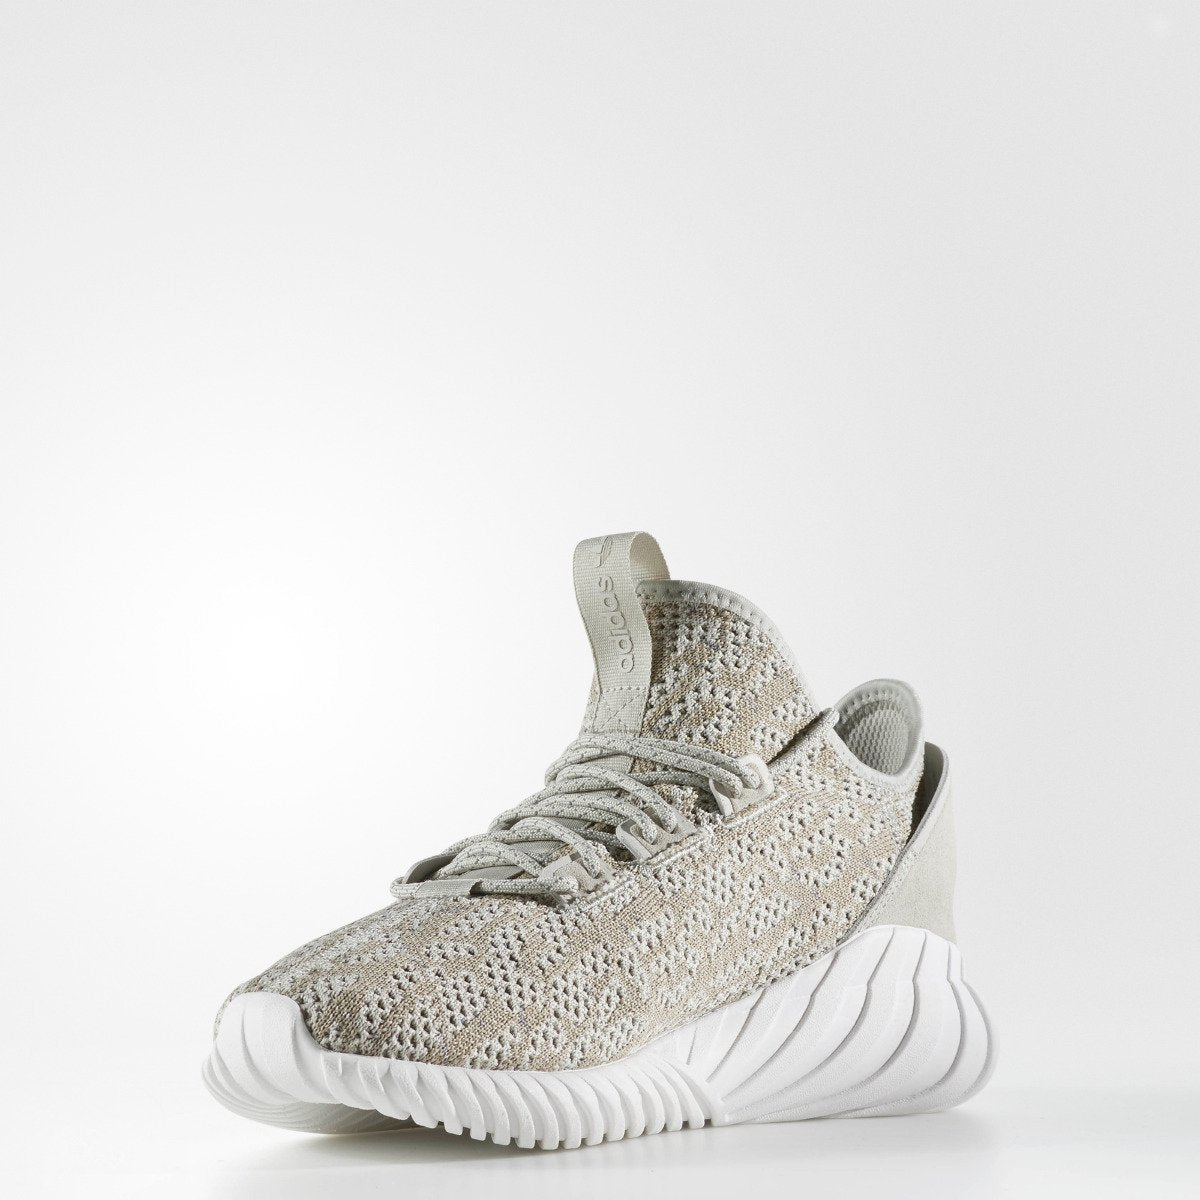 e40aacffc Men s adidas Originals Tubular Doom Sock Primeknit Shoes Sesame ...